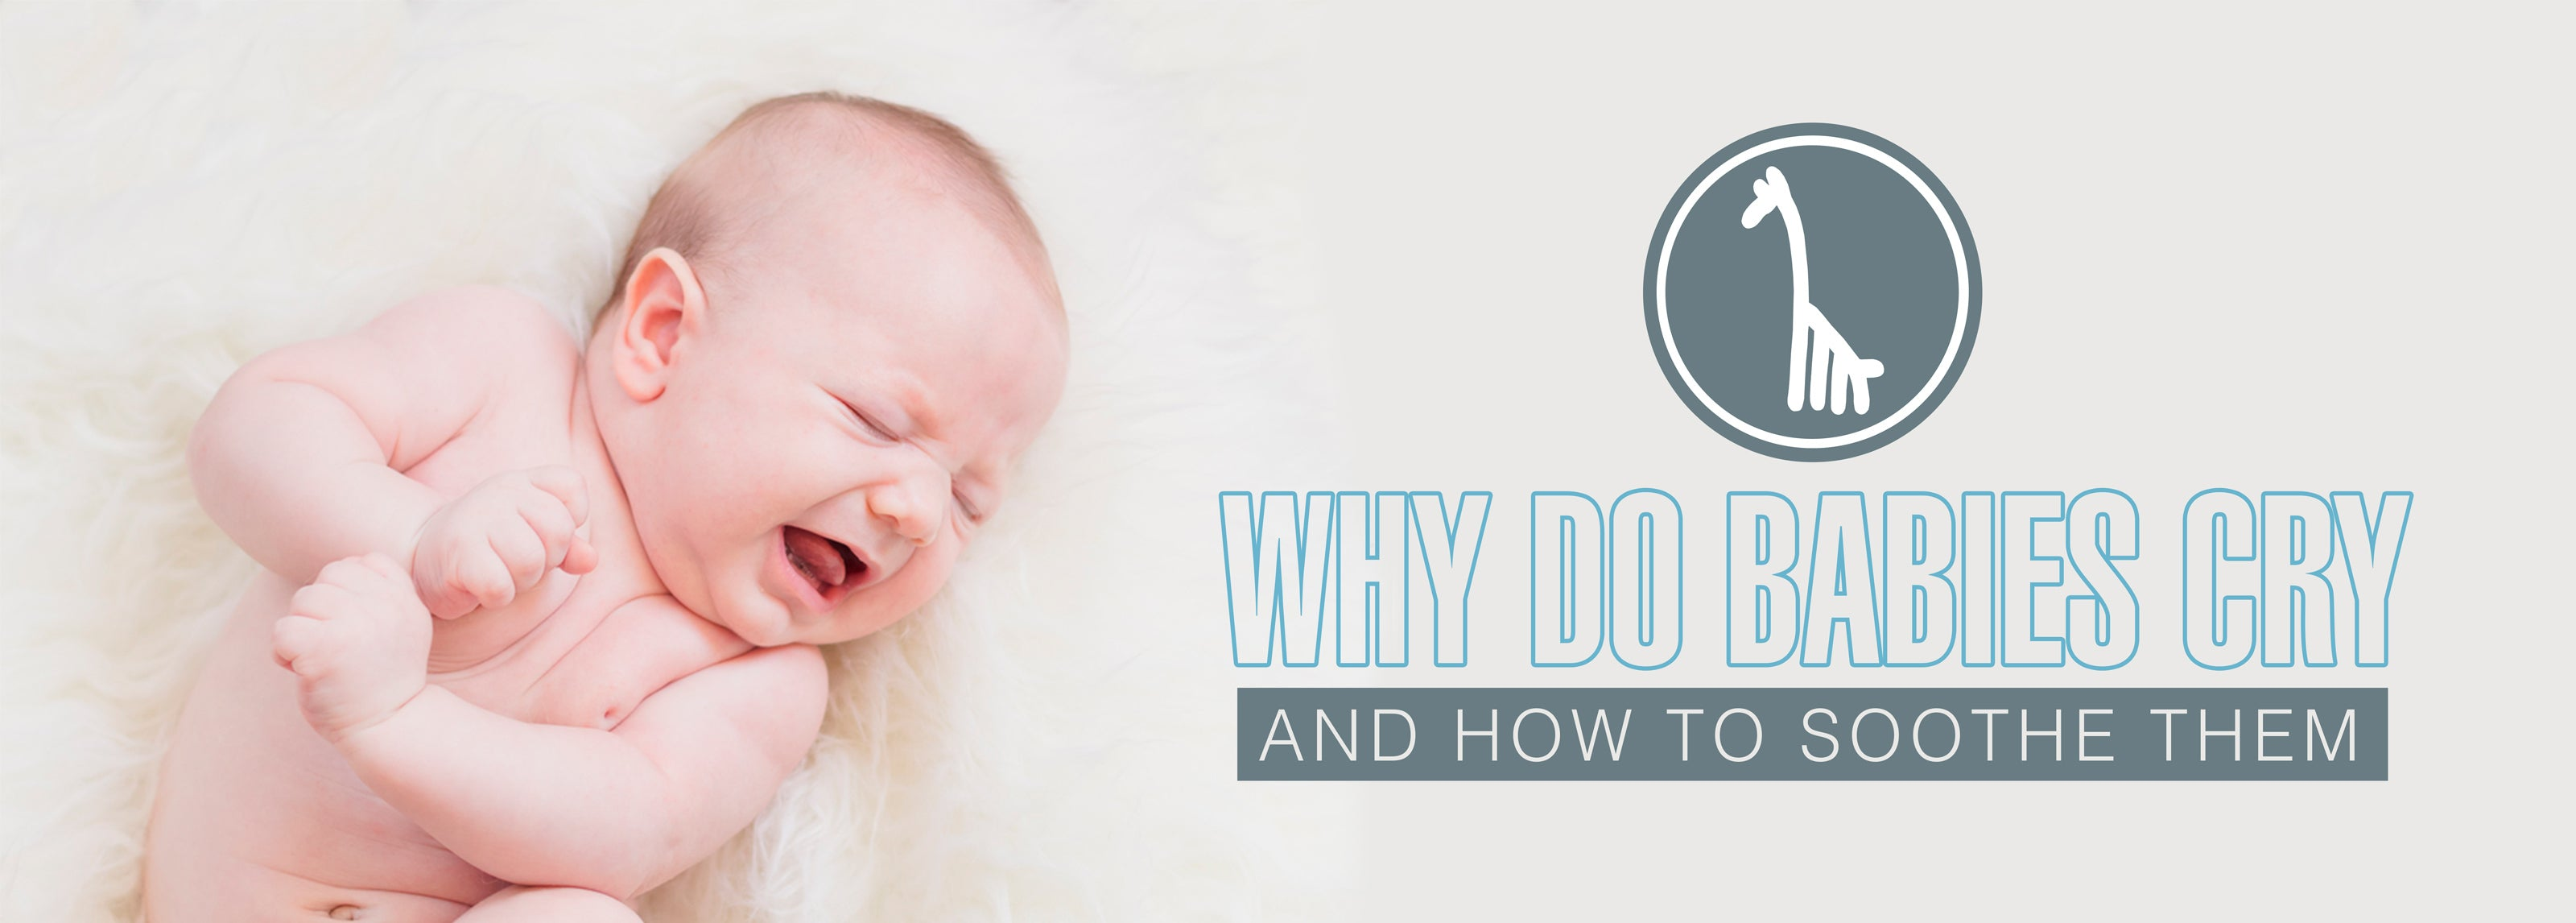 Why do babies cry and how to soothe them